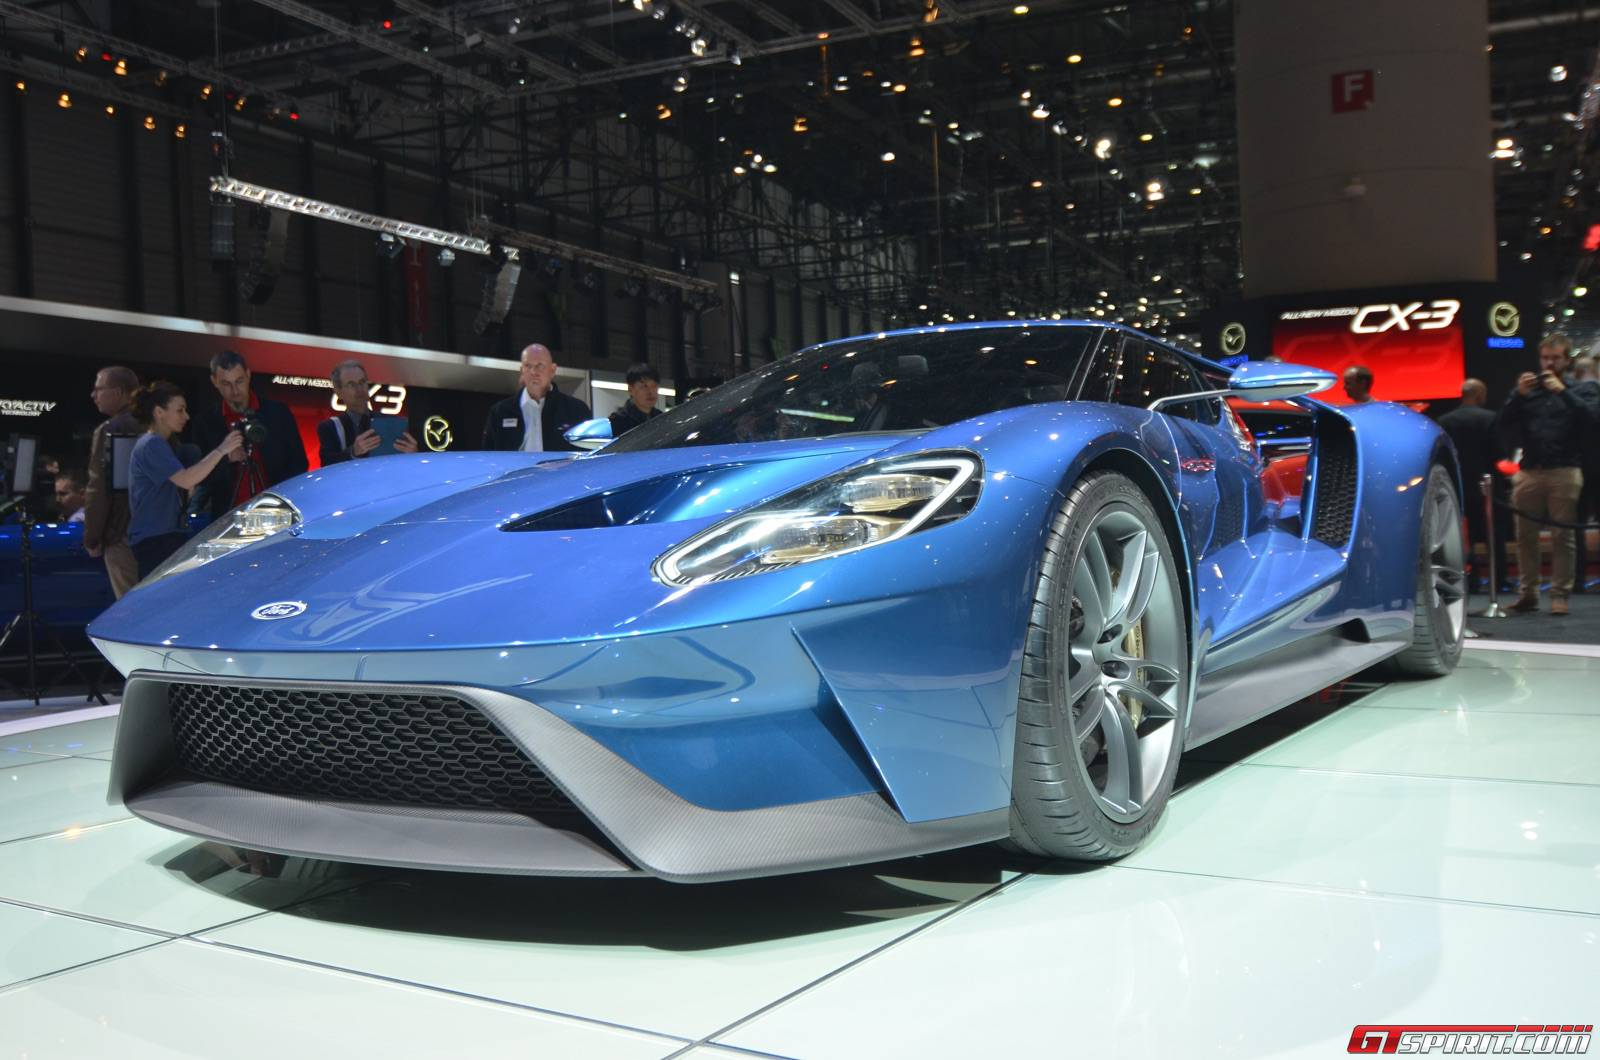 ford gt at the geneva motor show 2015 - 2015 Ford Gt Auto Show